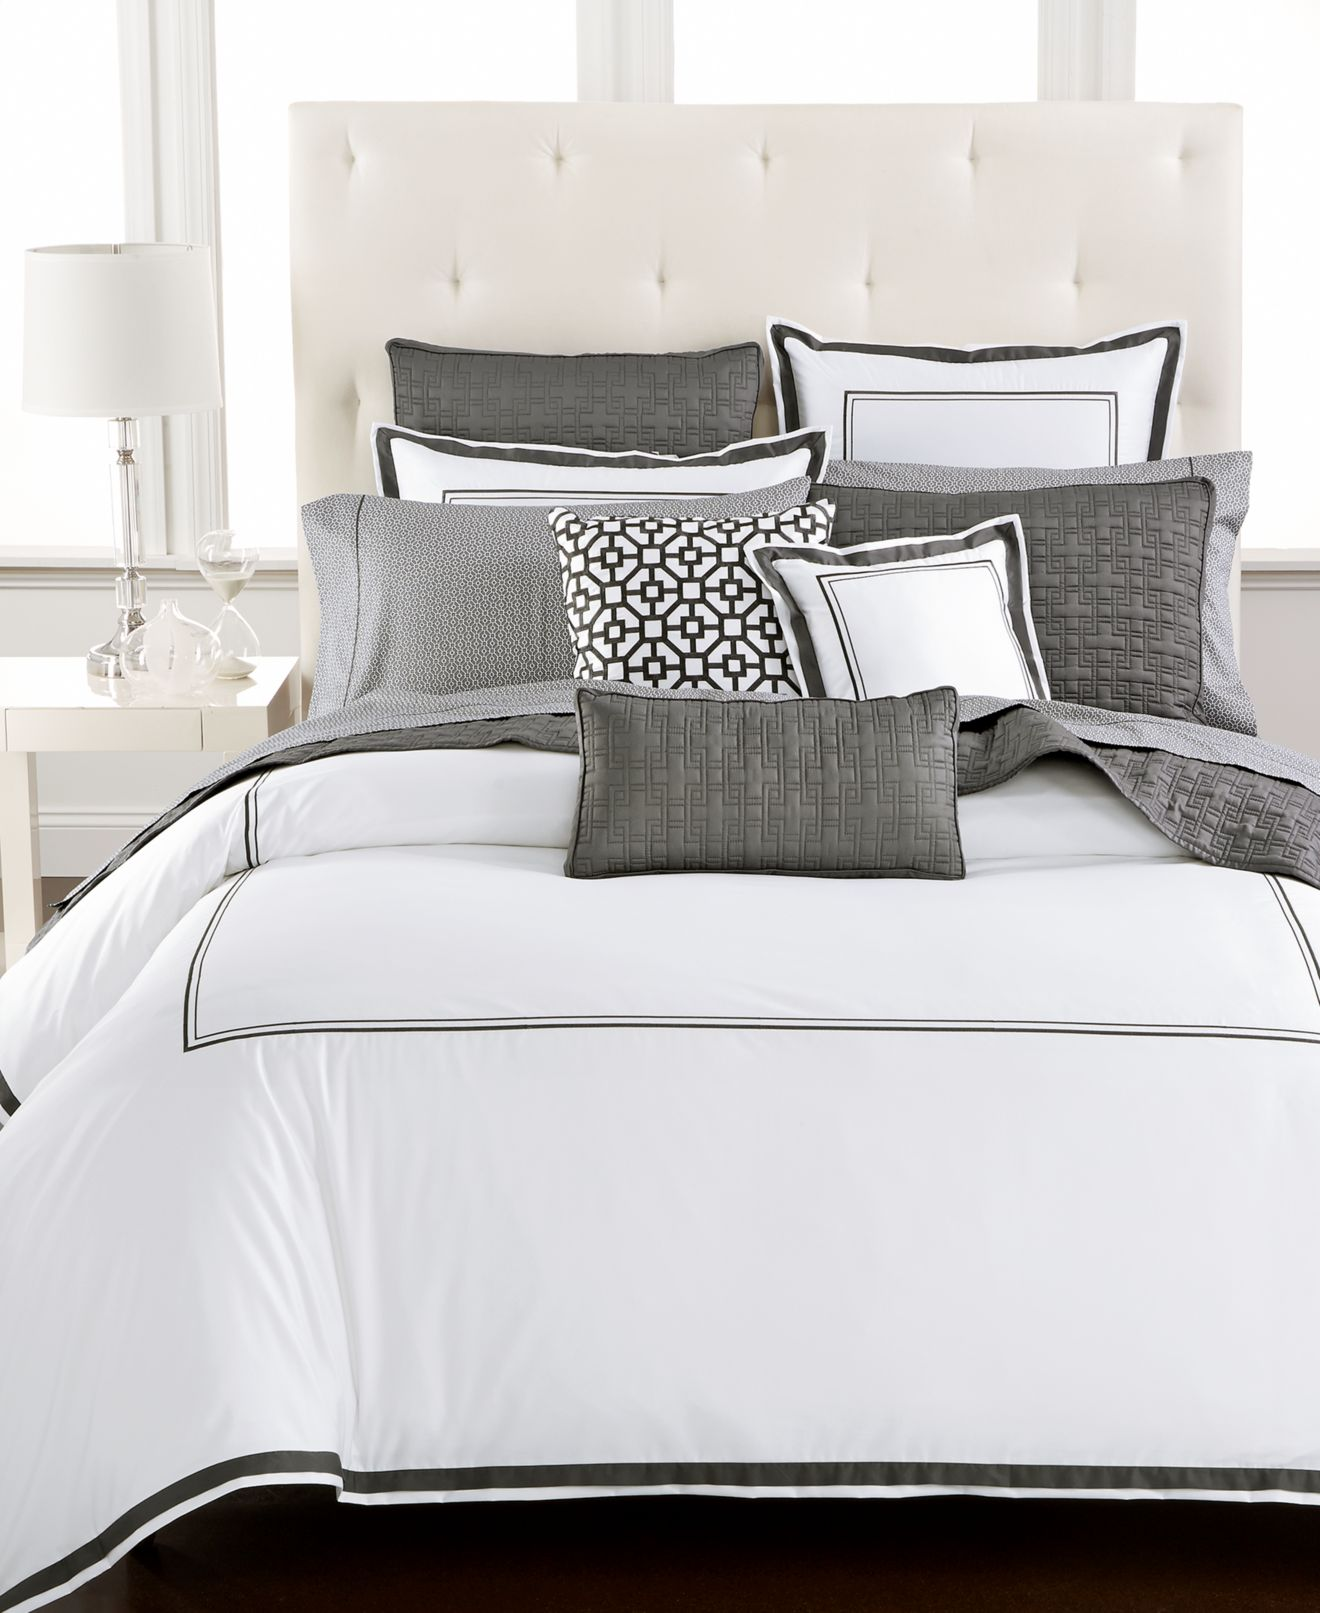 hotel collection embroidered frame bedding collection, created for